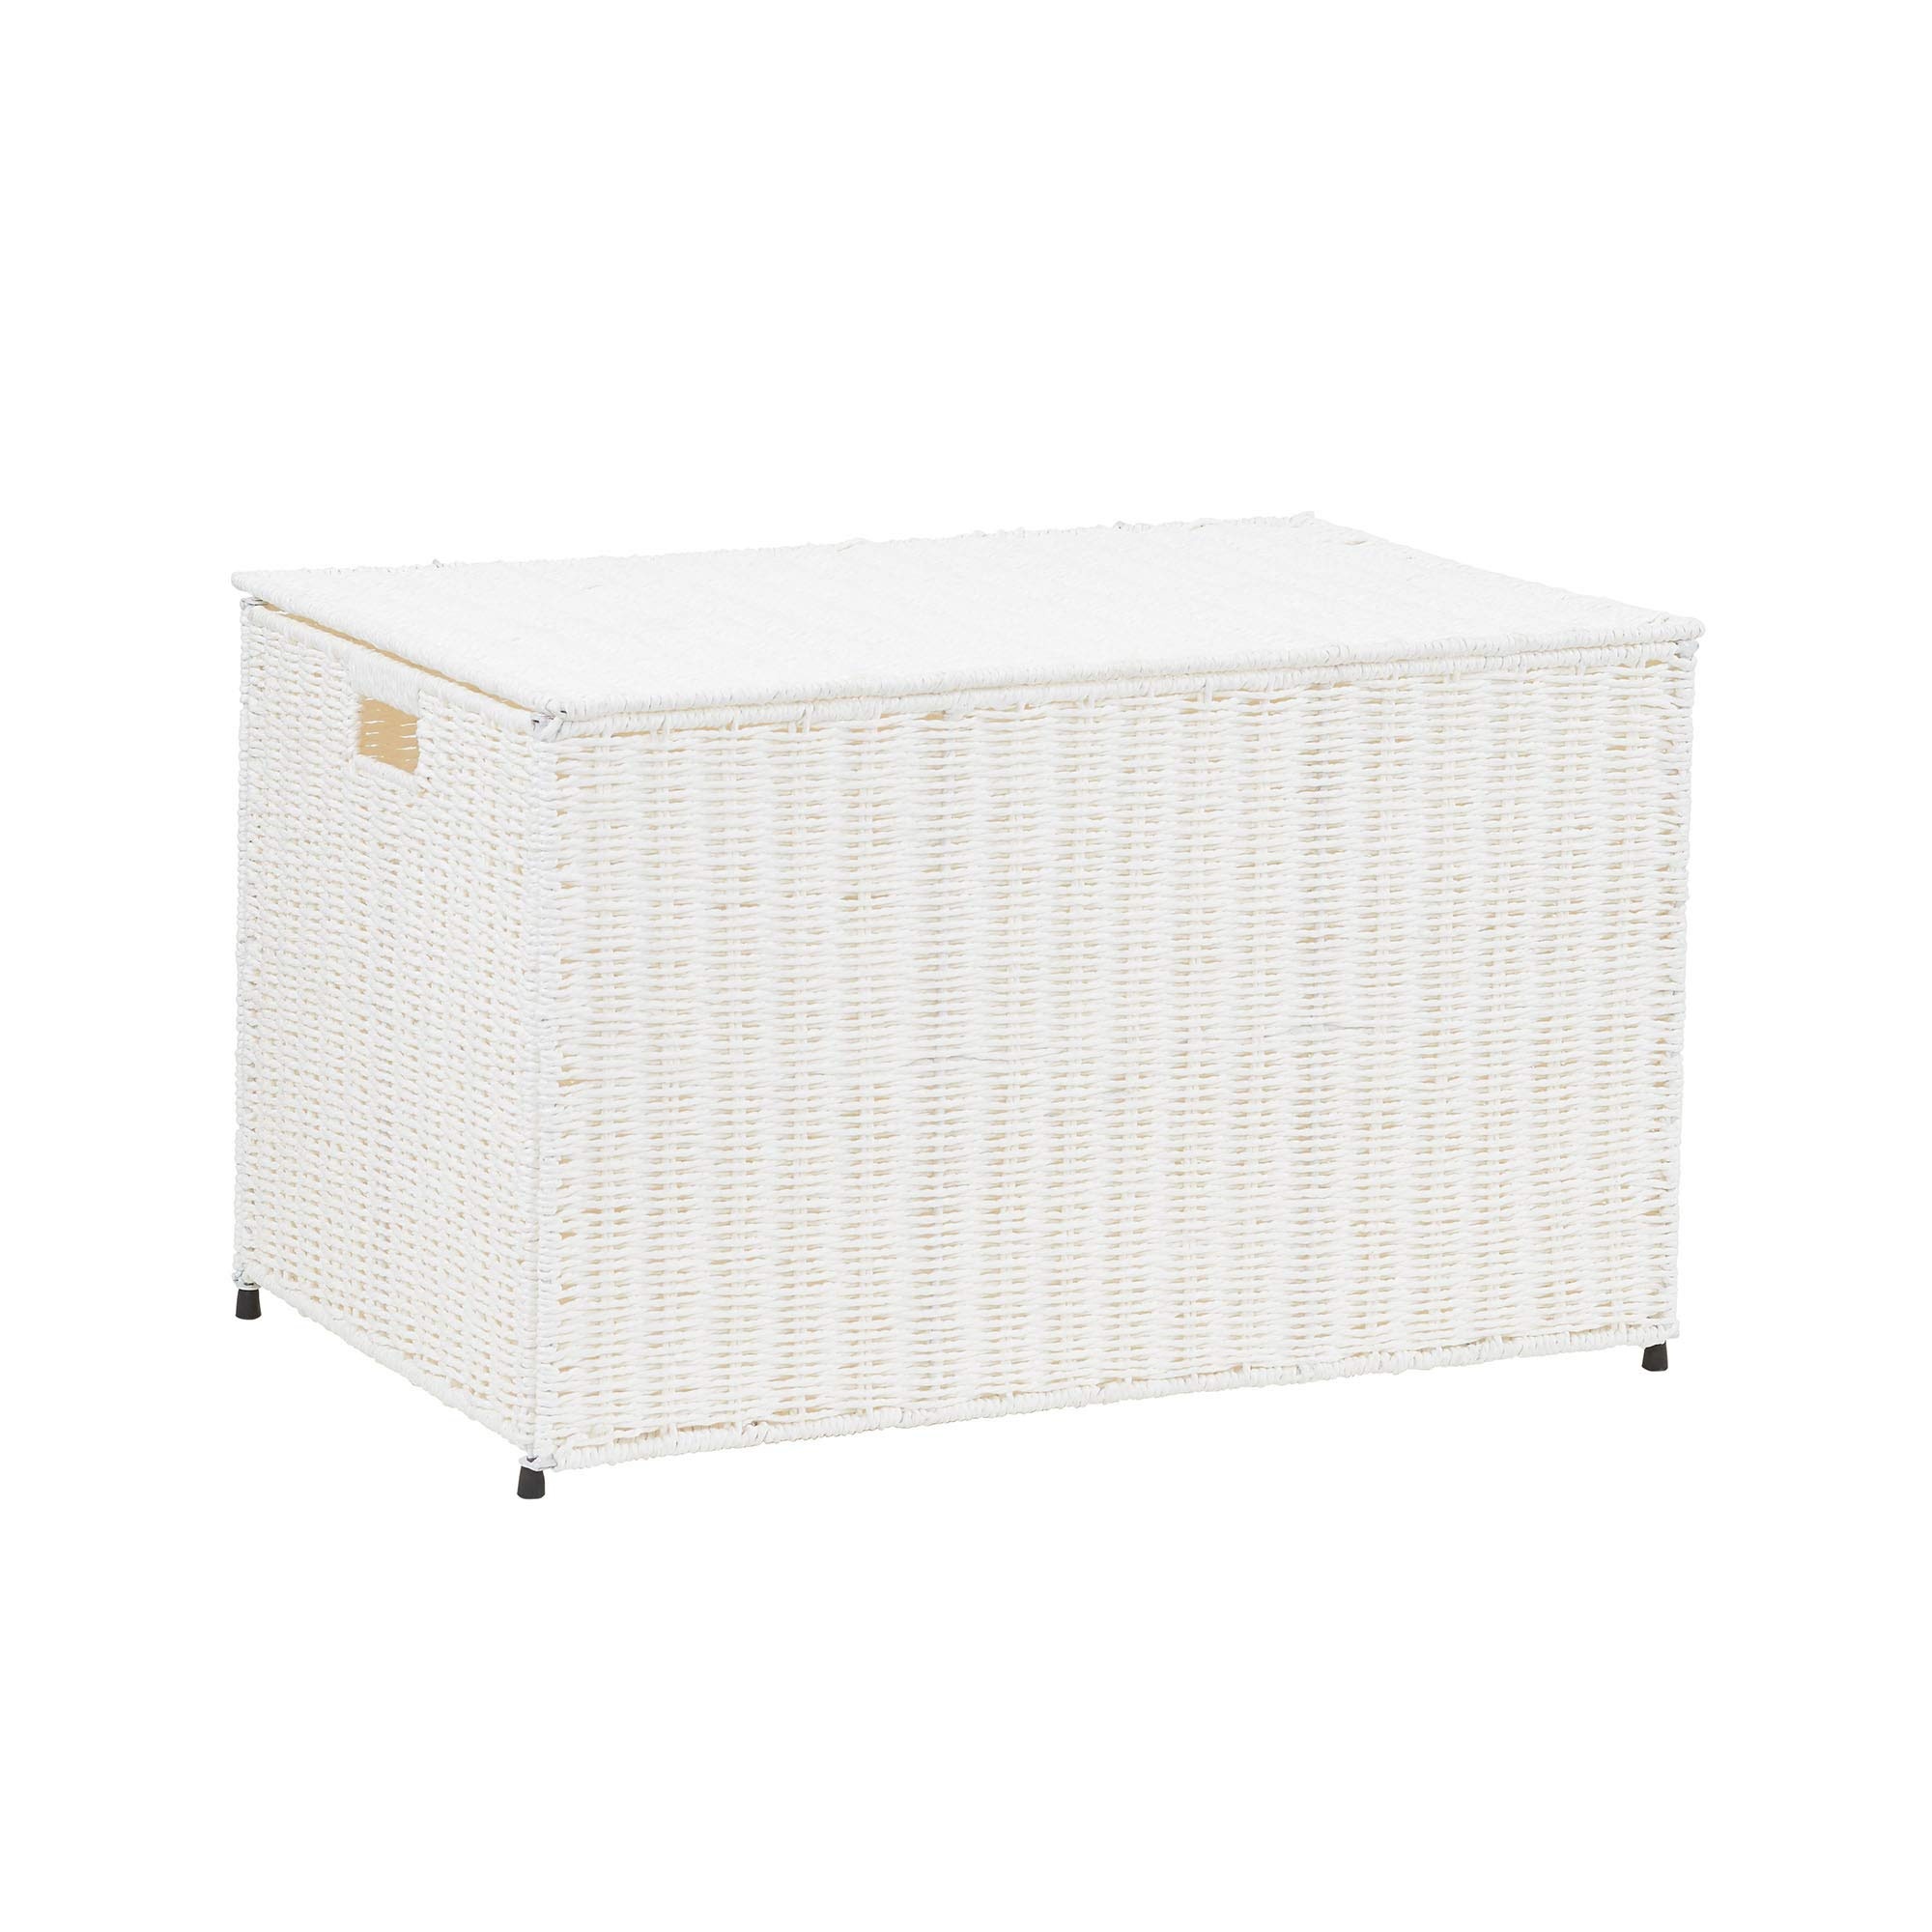 Household Essentials ML-7165 Decorative Wicker Chest with Lid for Storage and Organization | Large | White